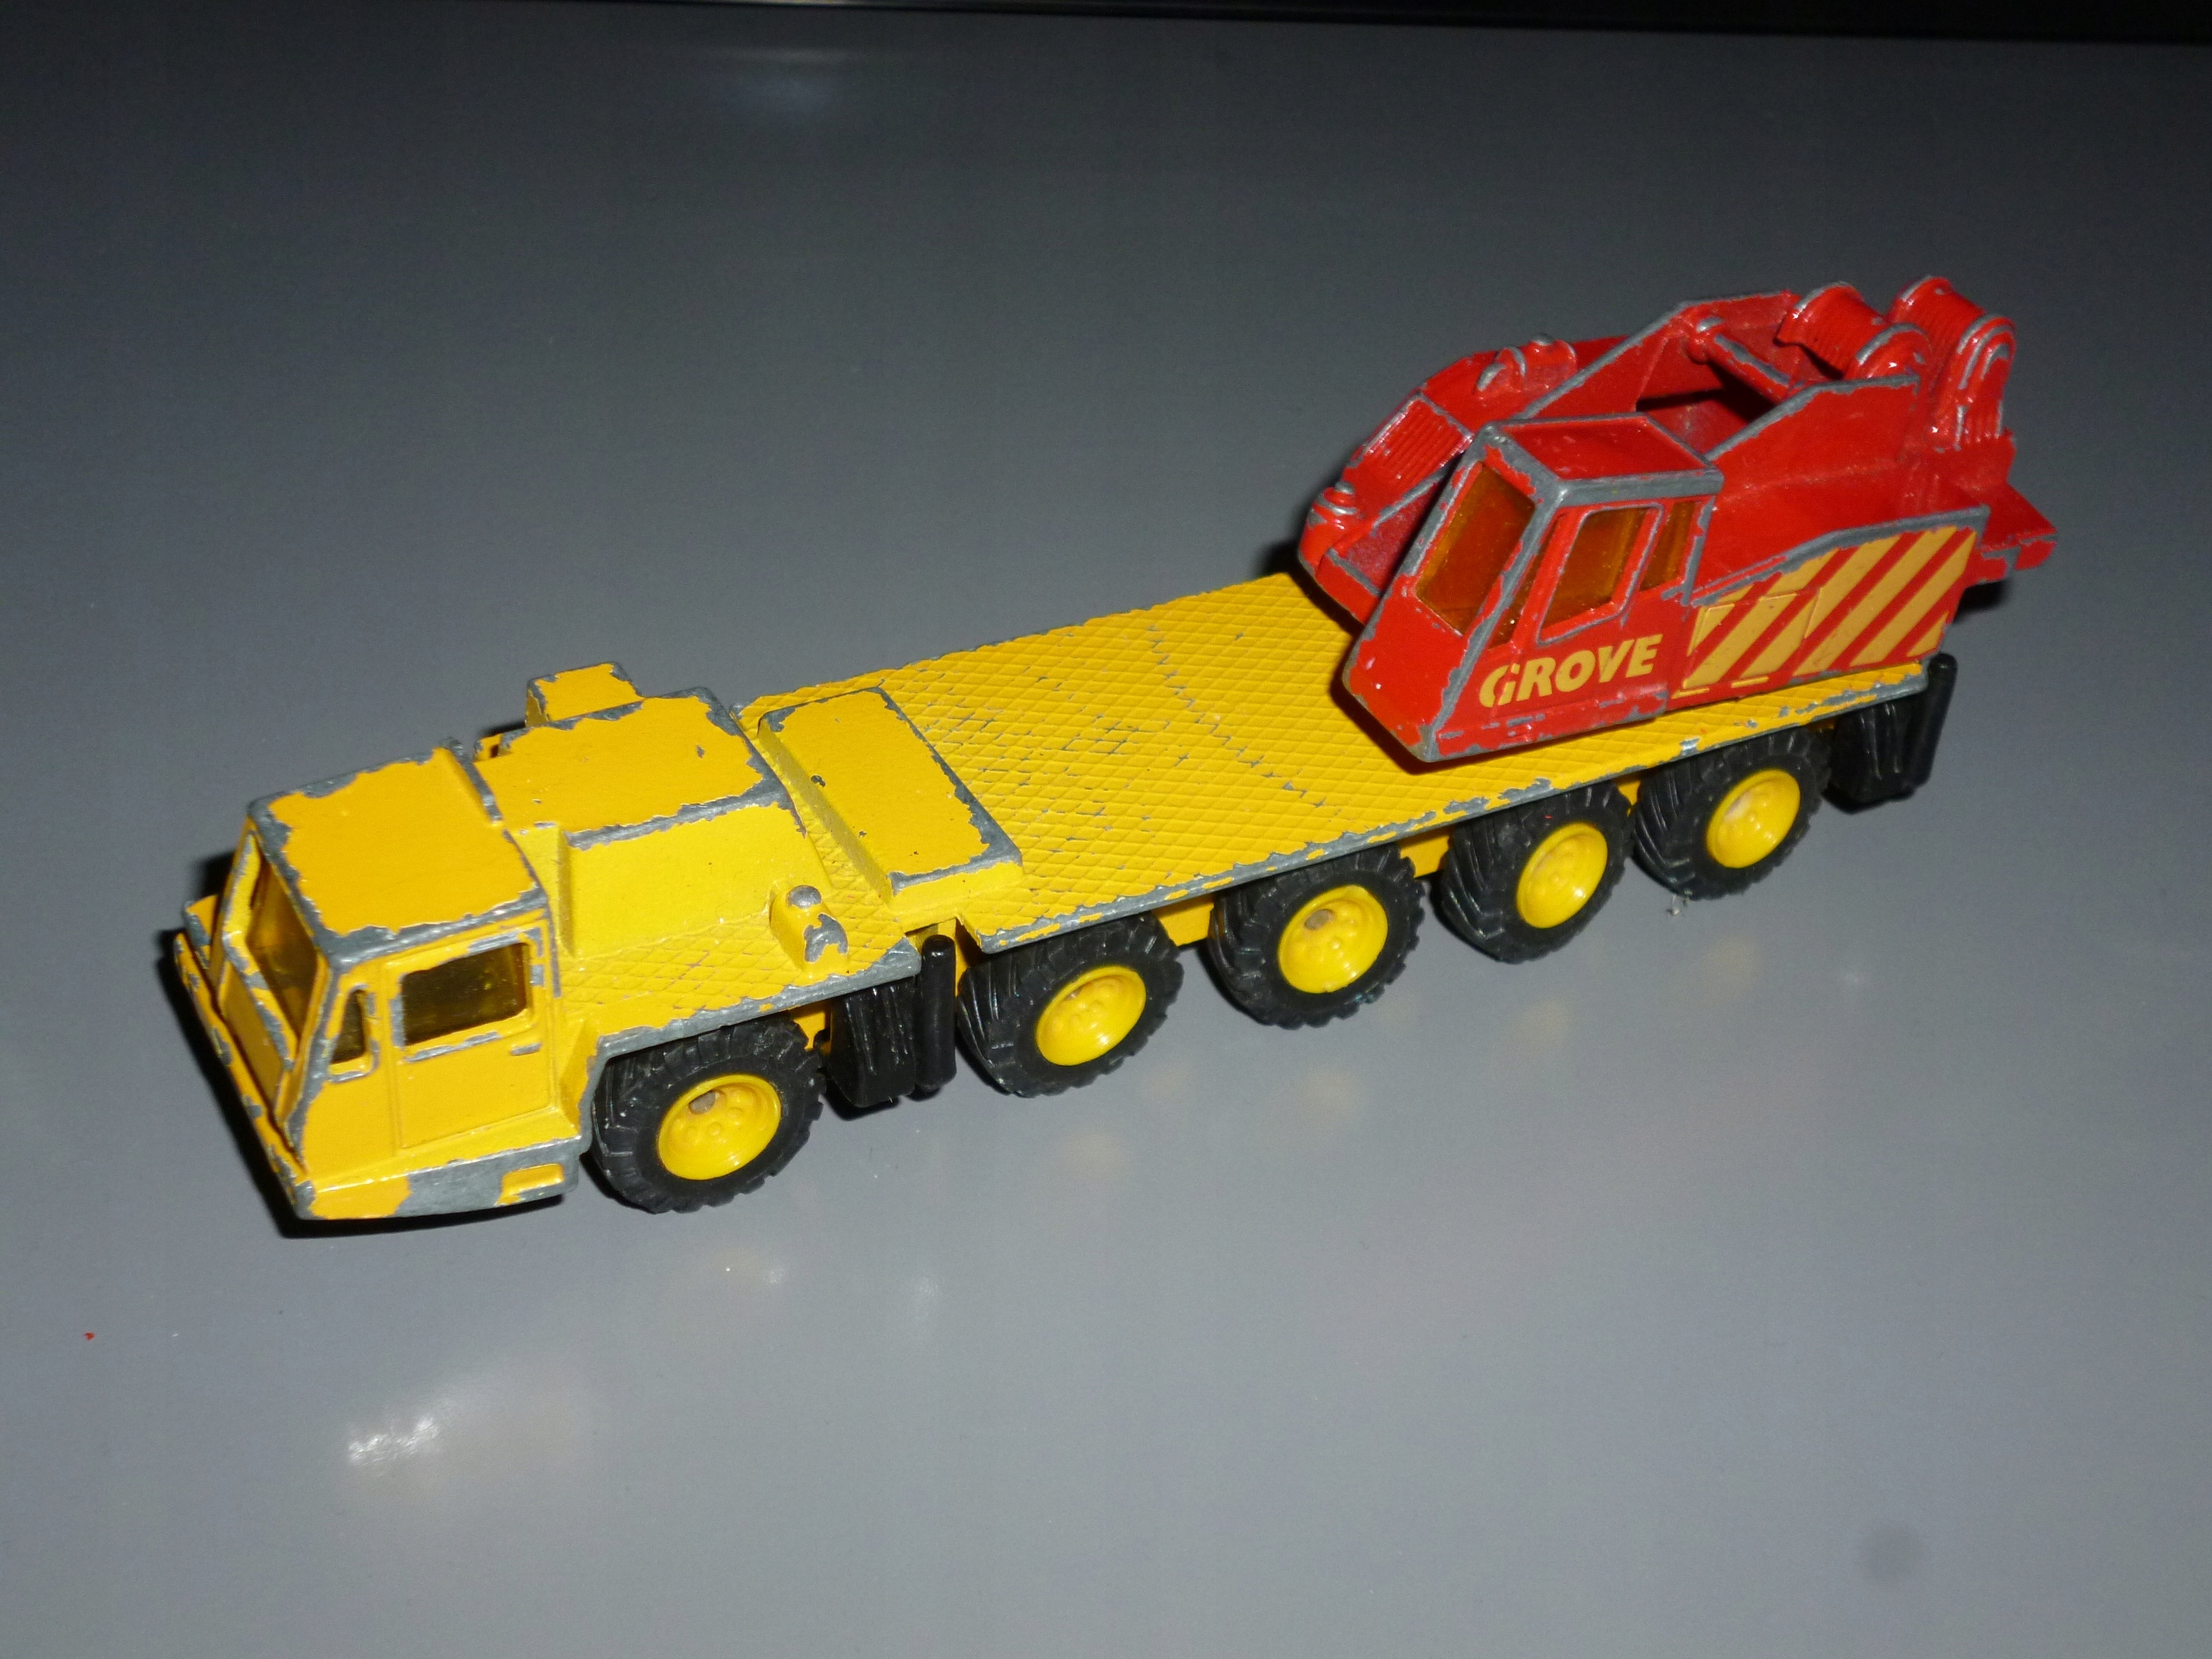 Grove At 1100 Crane 1992 Matchbox model resorak